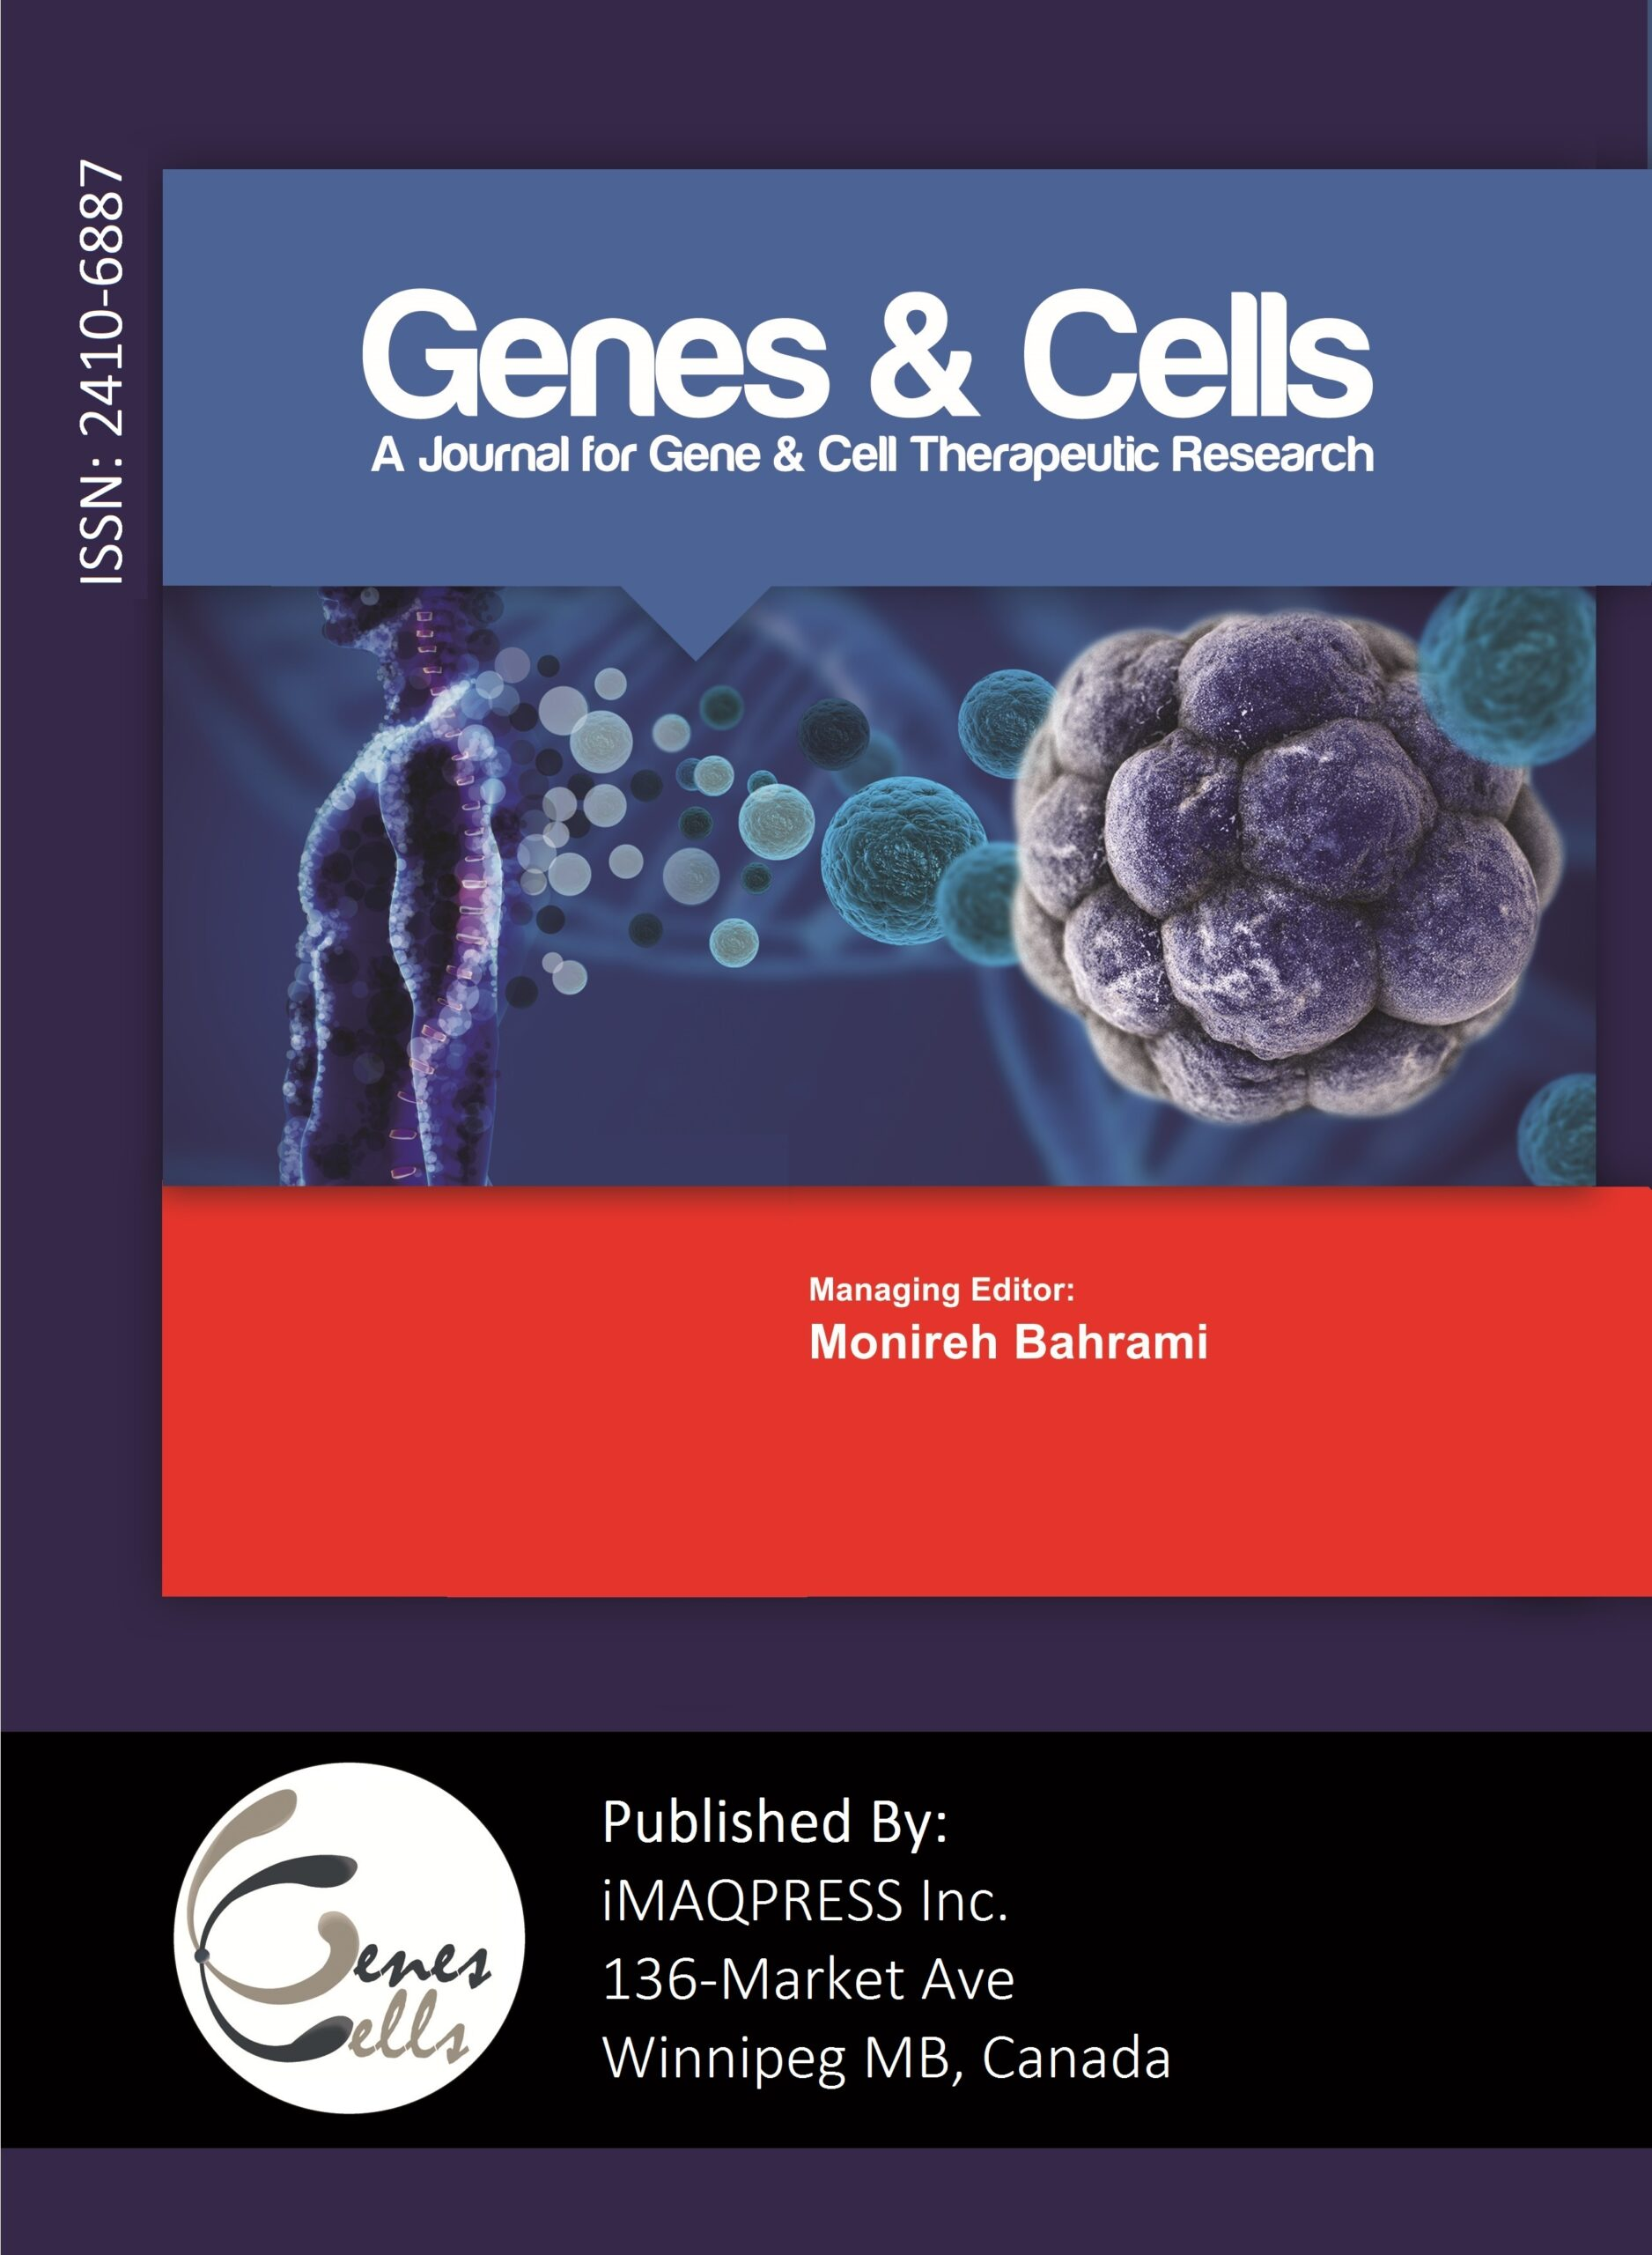 Genes and Cells Journal